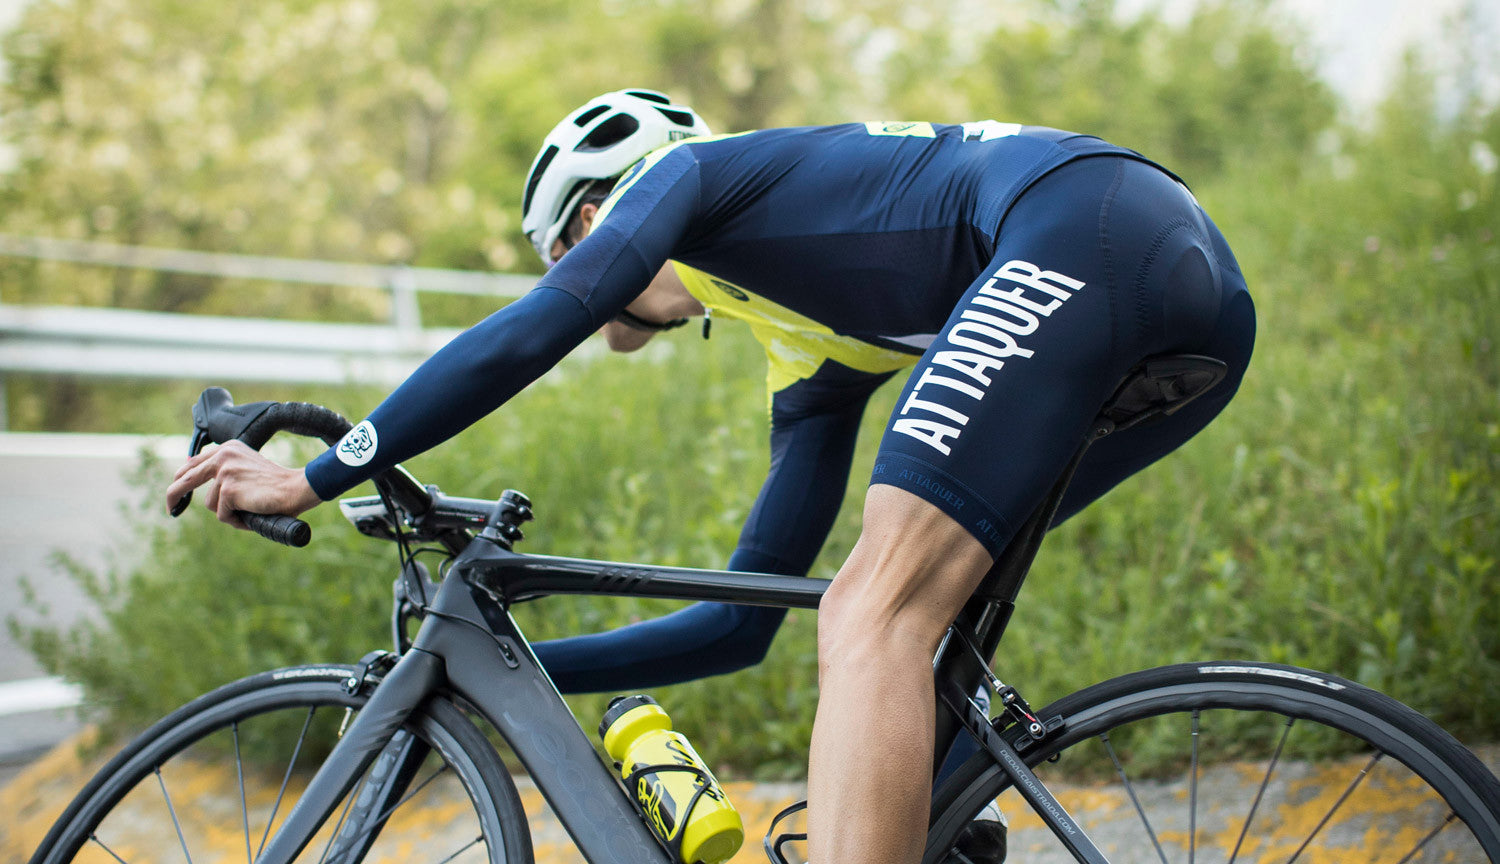 Your guide to Attaquer Bib shorts